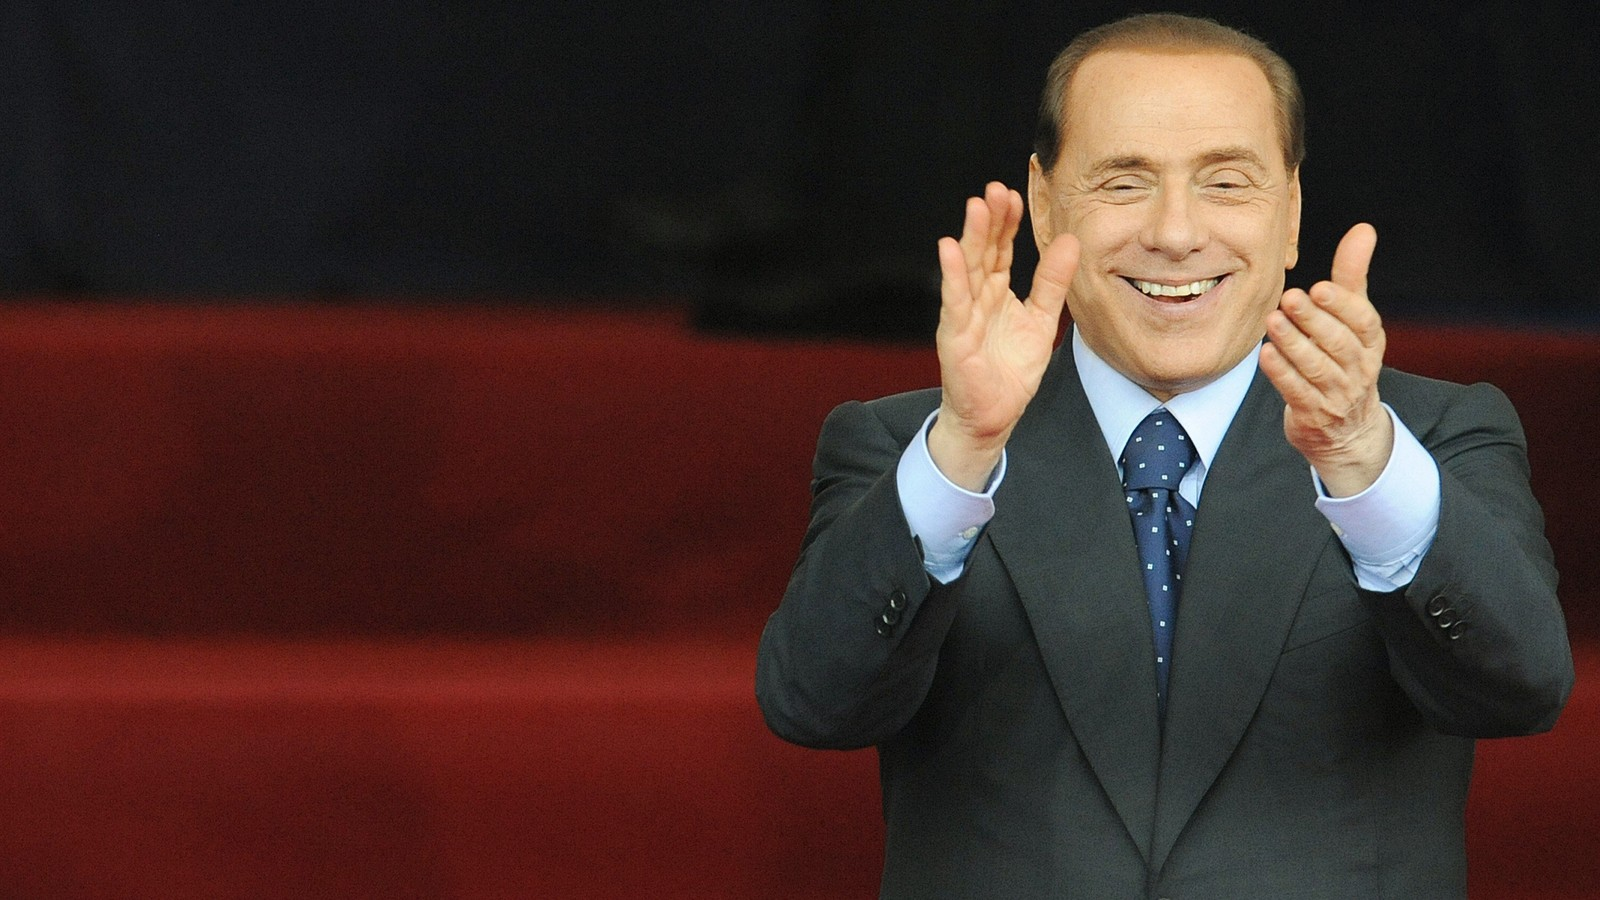 Fotos de berlusconi sin censura 11